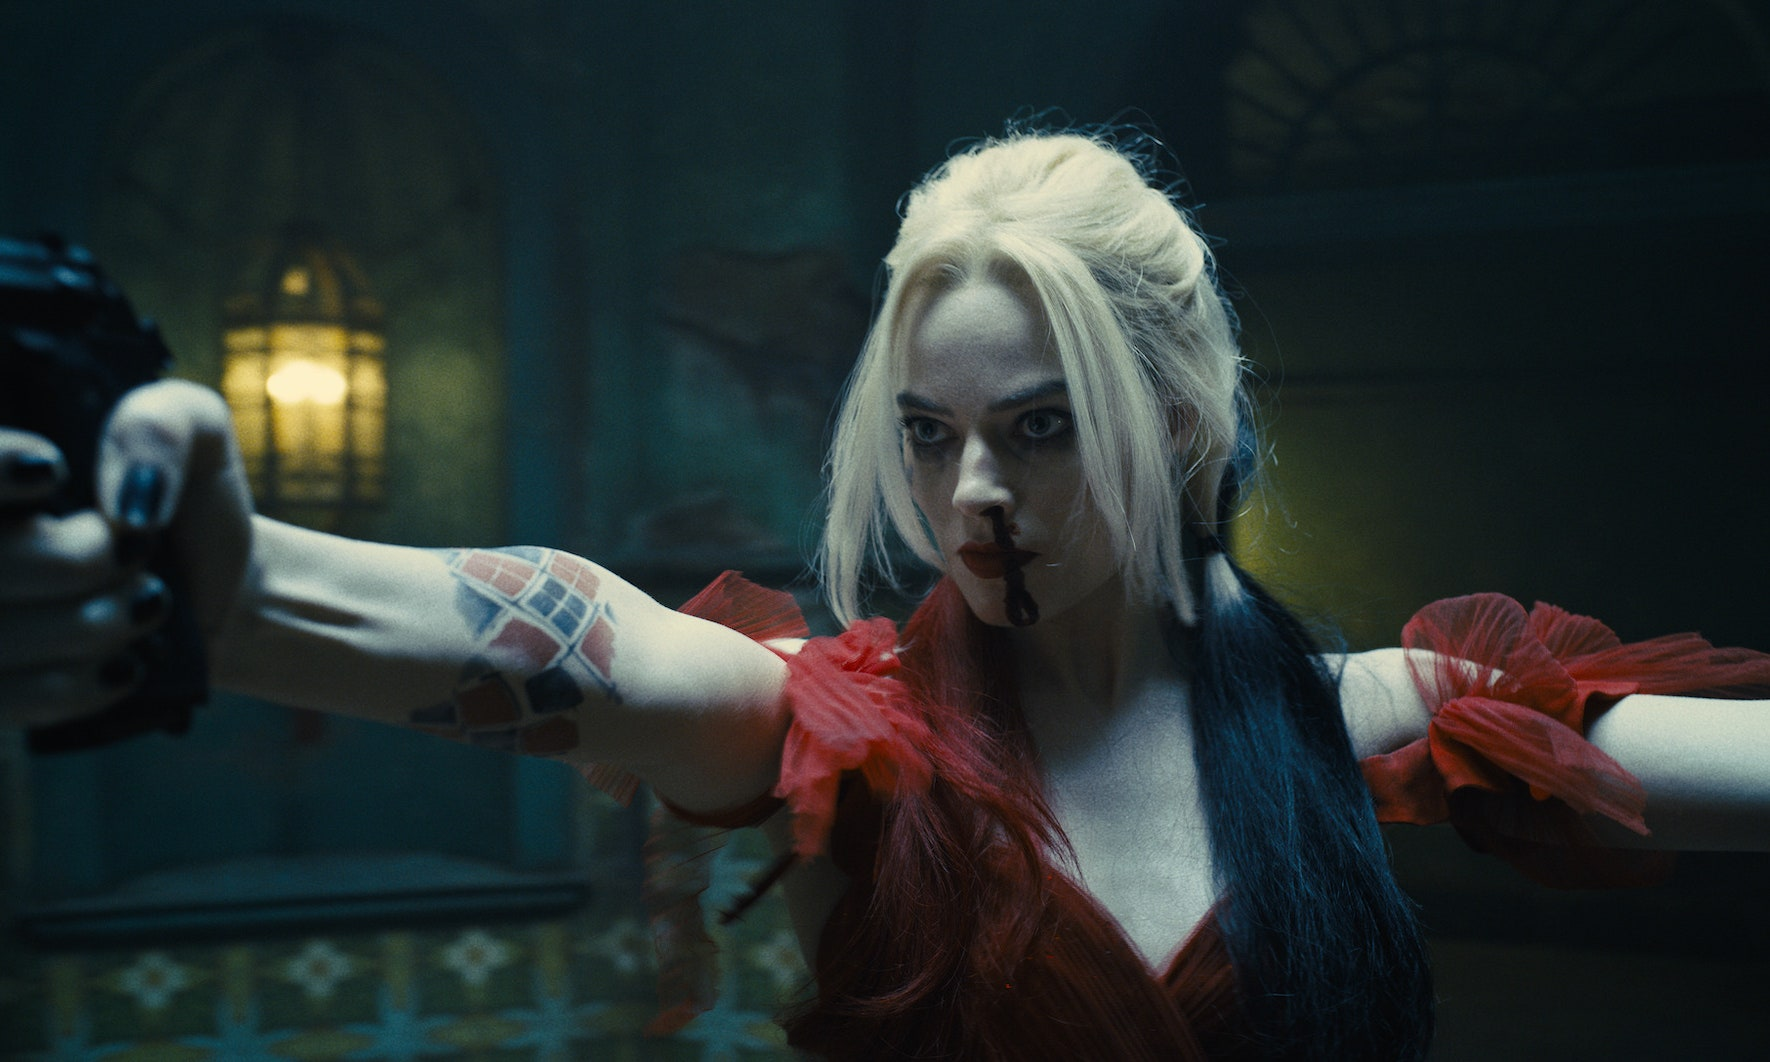 Harley Quinn points a gun at someone, blood dripping down her face. She's wearing a lovely ballgown.